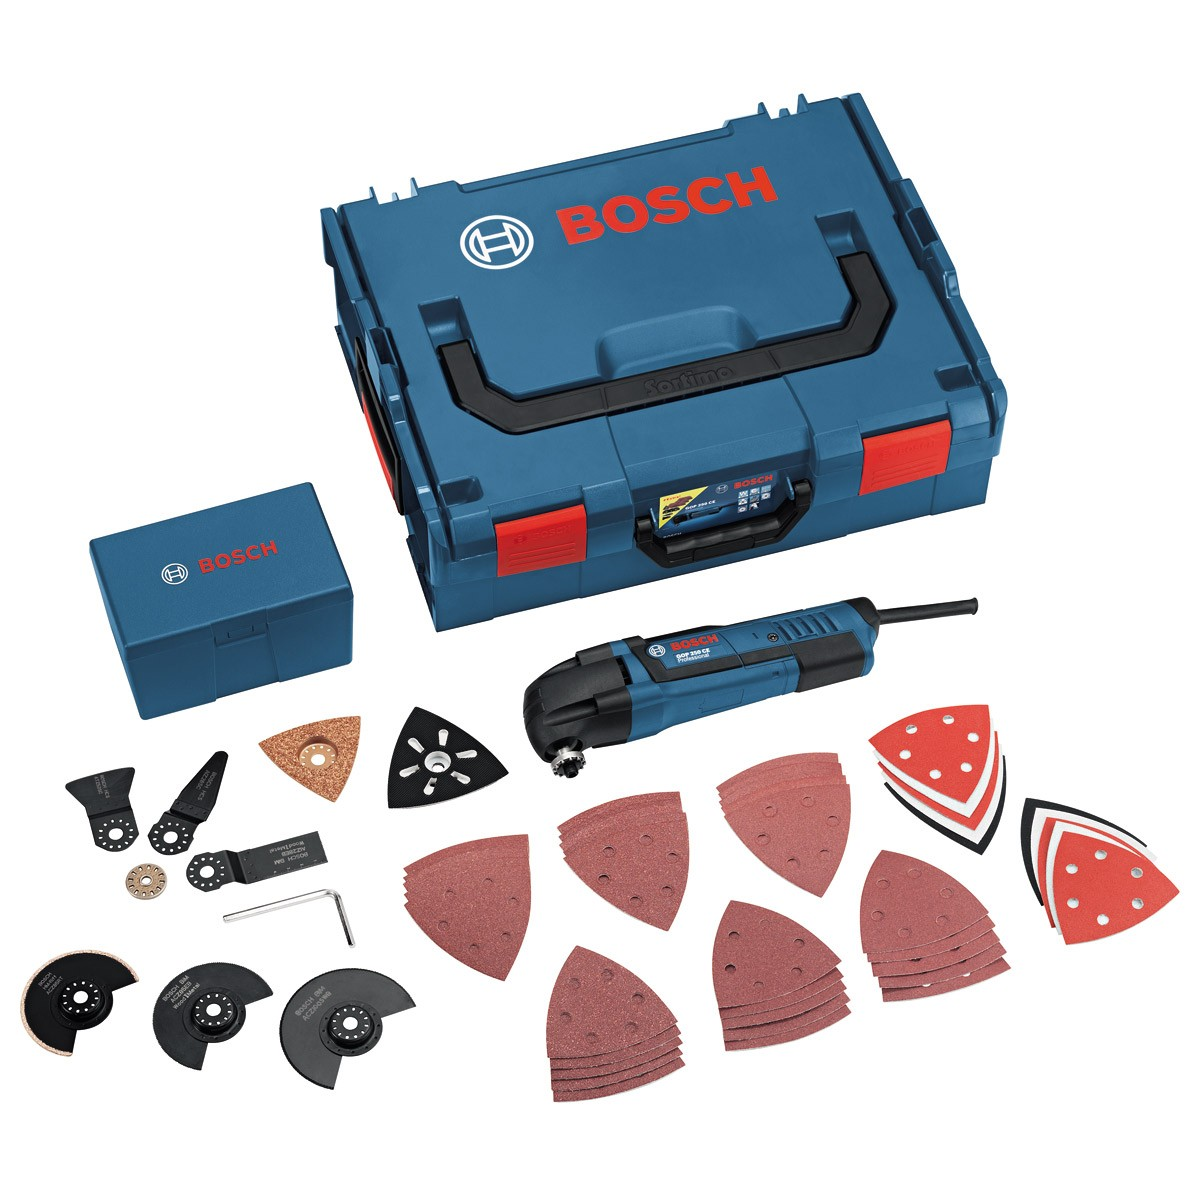 Bosch GOP 250 CE 240v inc 48 Accessories in L-Boxx